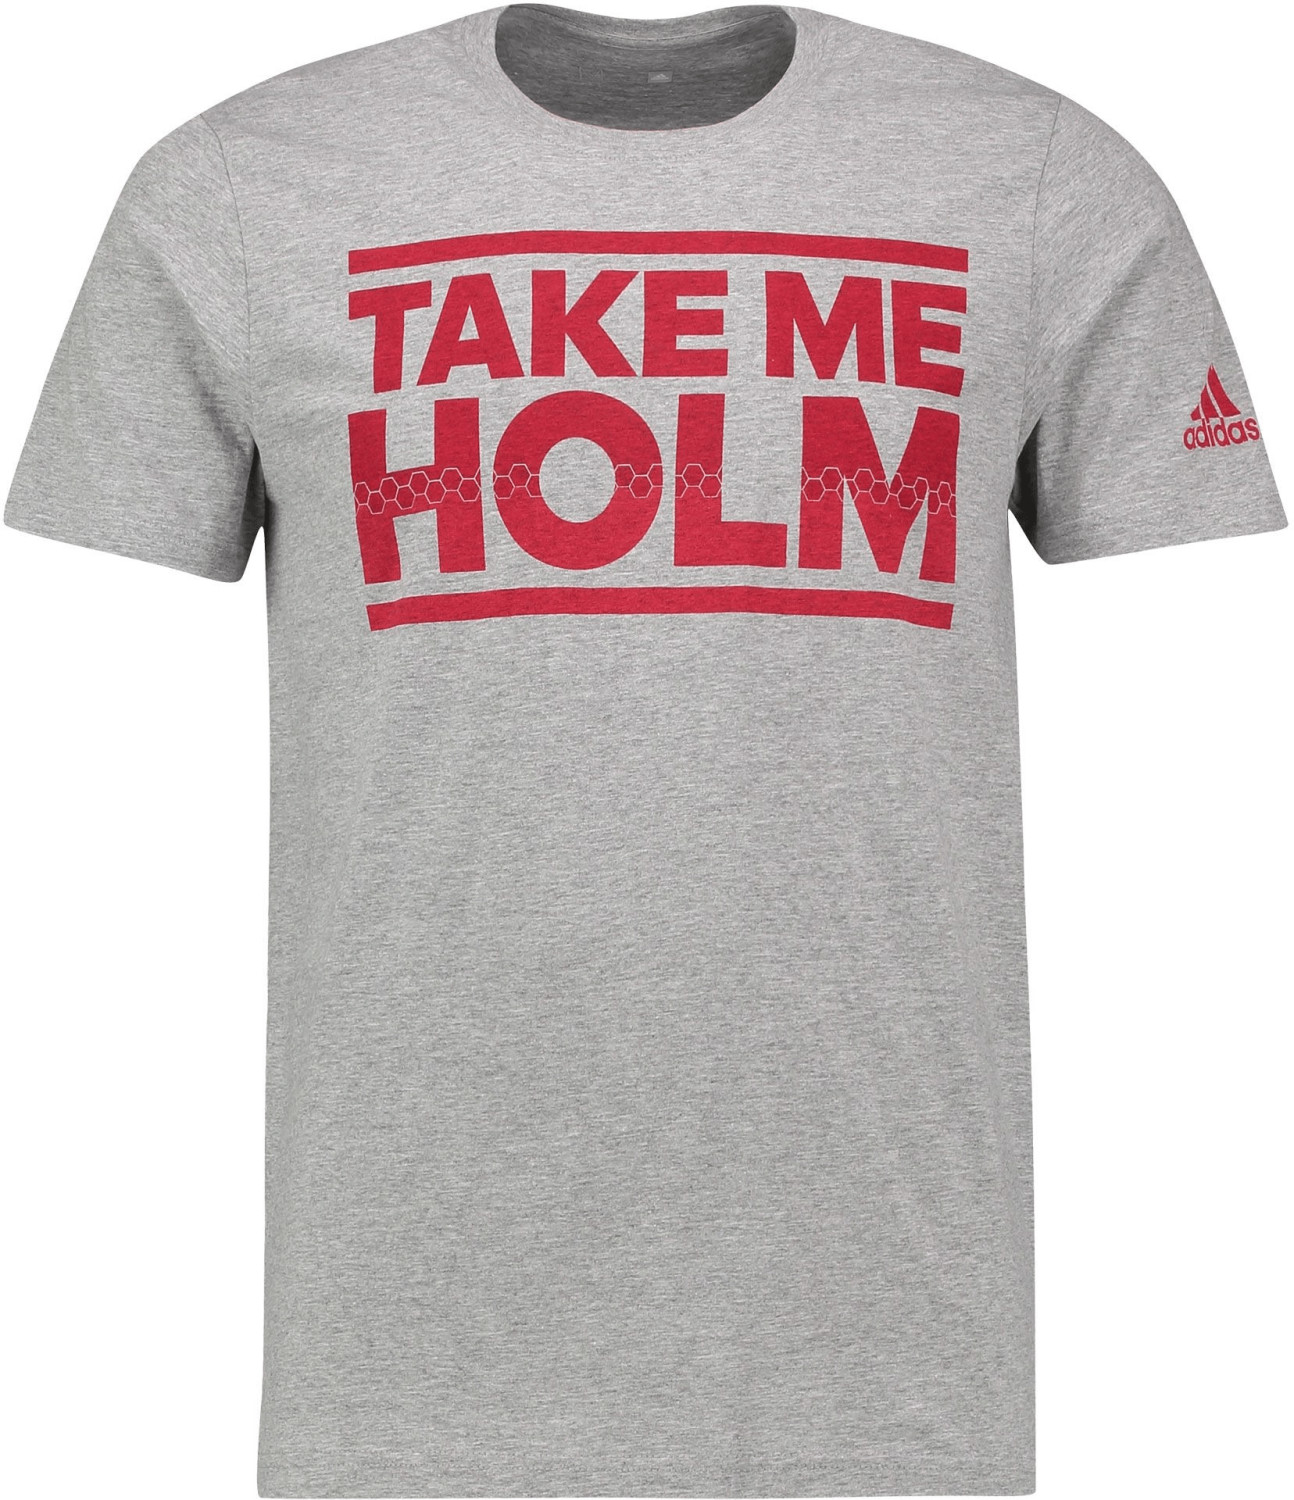 Adidas Manchester United Take Me Holm T-Shirt